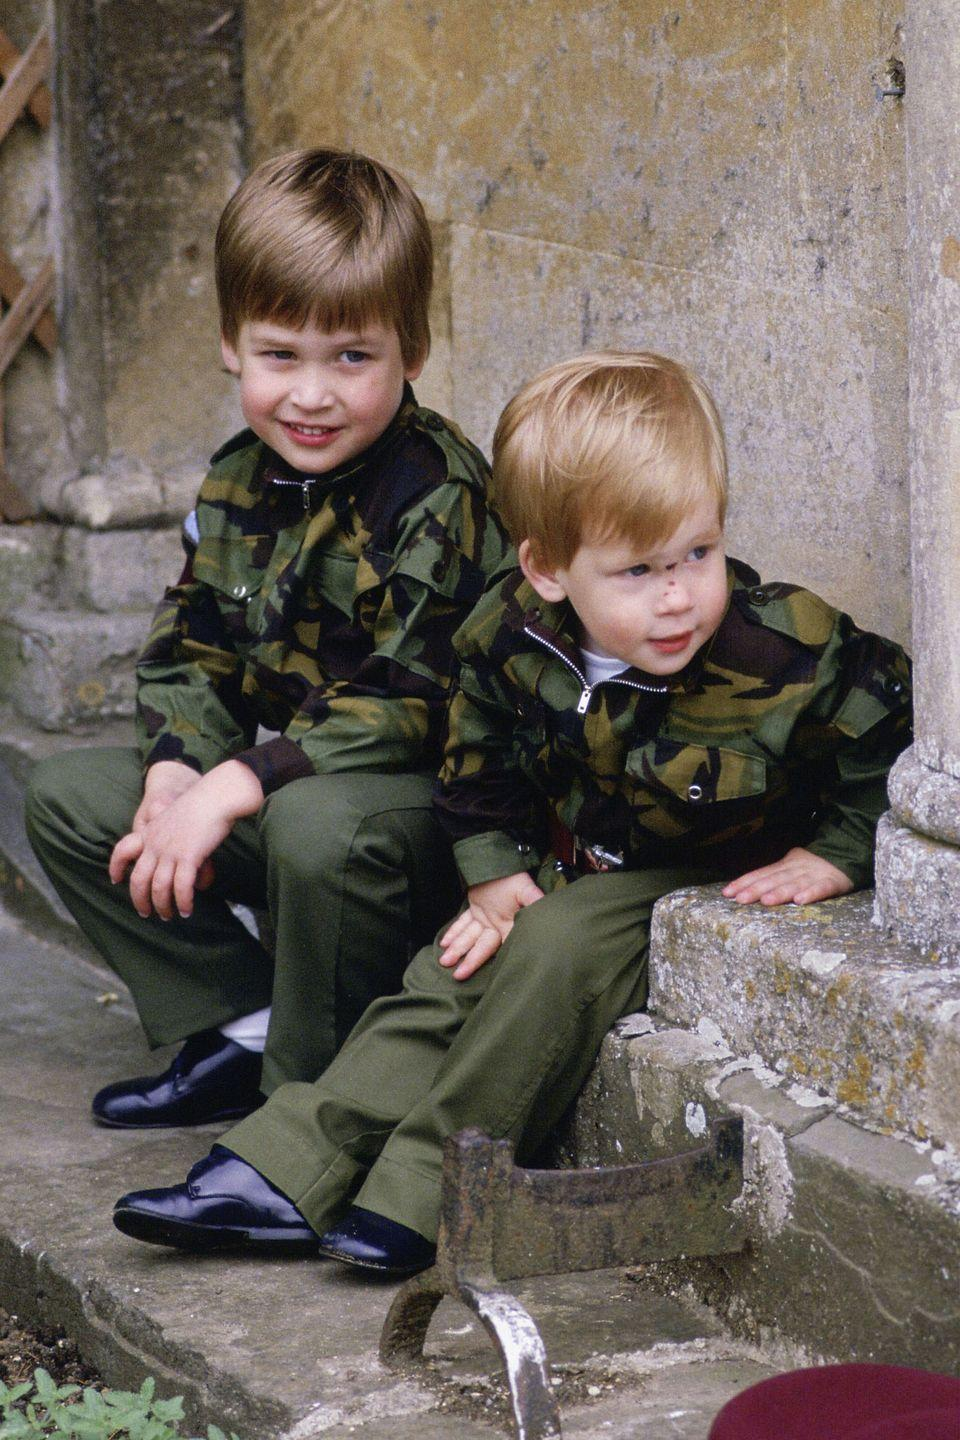 <p>Prince Harry and Prince William dressed in army uniforms as toddlers on the steps of Highgrove House.</p>